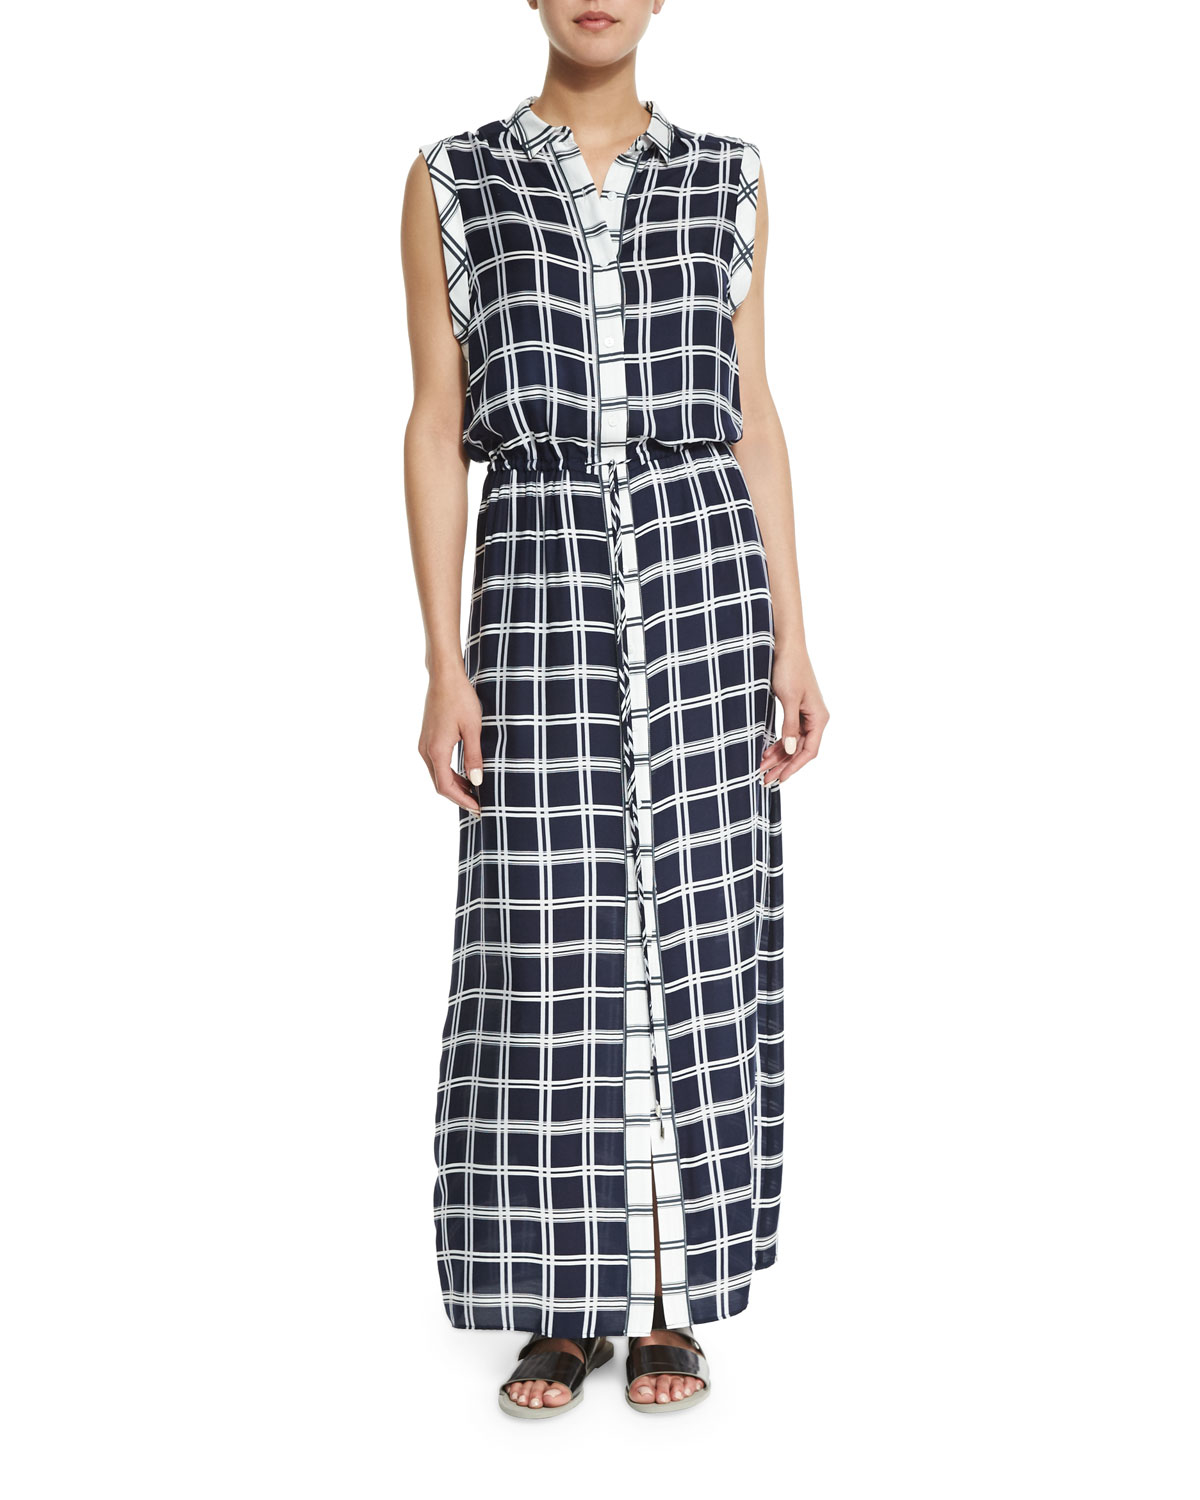 Belted Tartan Plaid Dress breastfeeding islamic clothes maxi dresses breastfeeding friendly Autumn trendy plaid pattern, breastfeeding friendly with buttons along front, below waist pockets for a relaxed touch and drawstring waist to ensure your perfect fit.